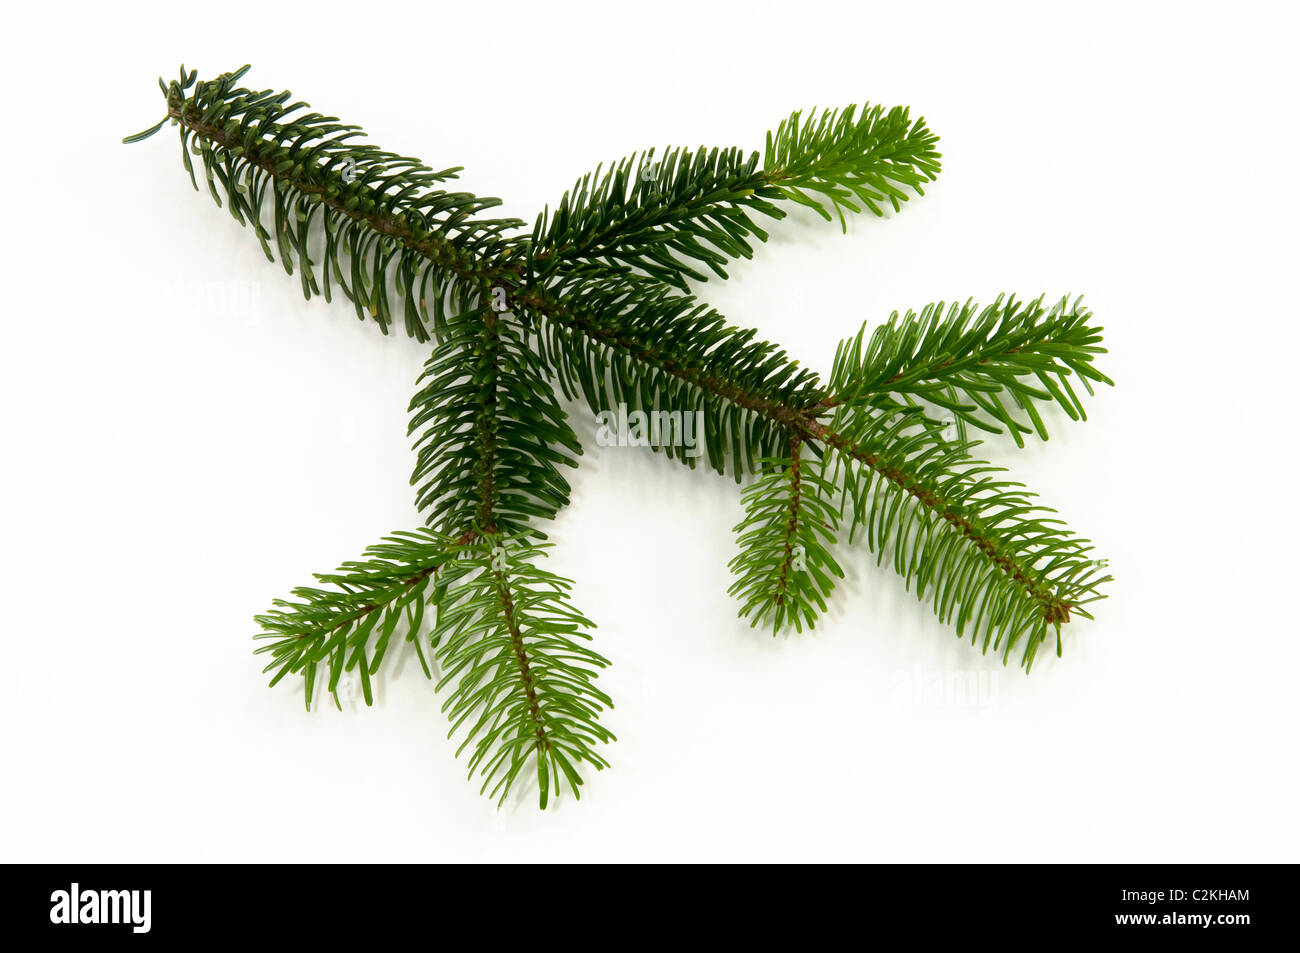 Caucasian Fir, Nordmann Fir (Abies nordmanniana), twig. Studio picture against a white background. - Stock Image